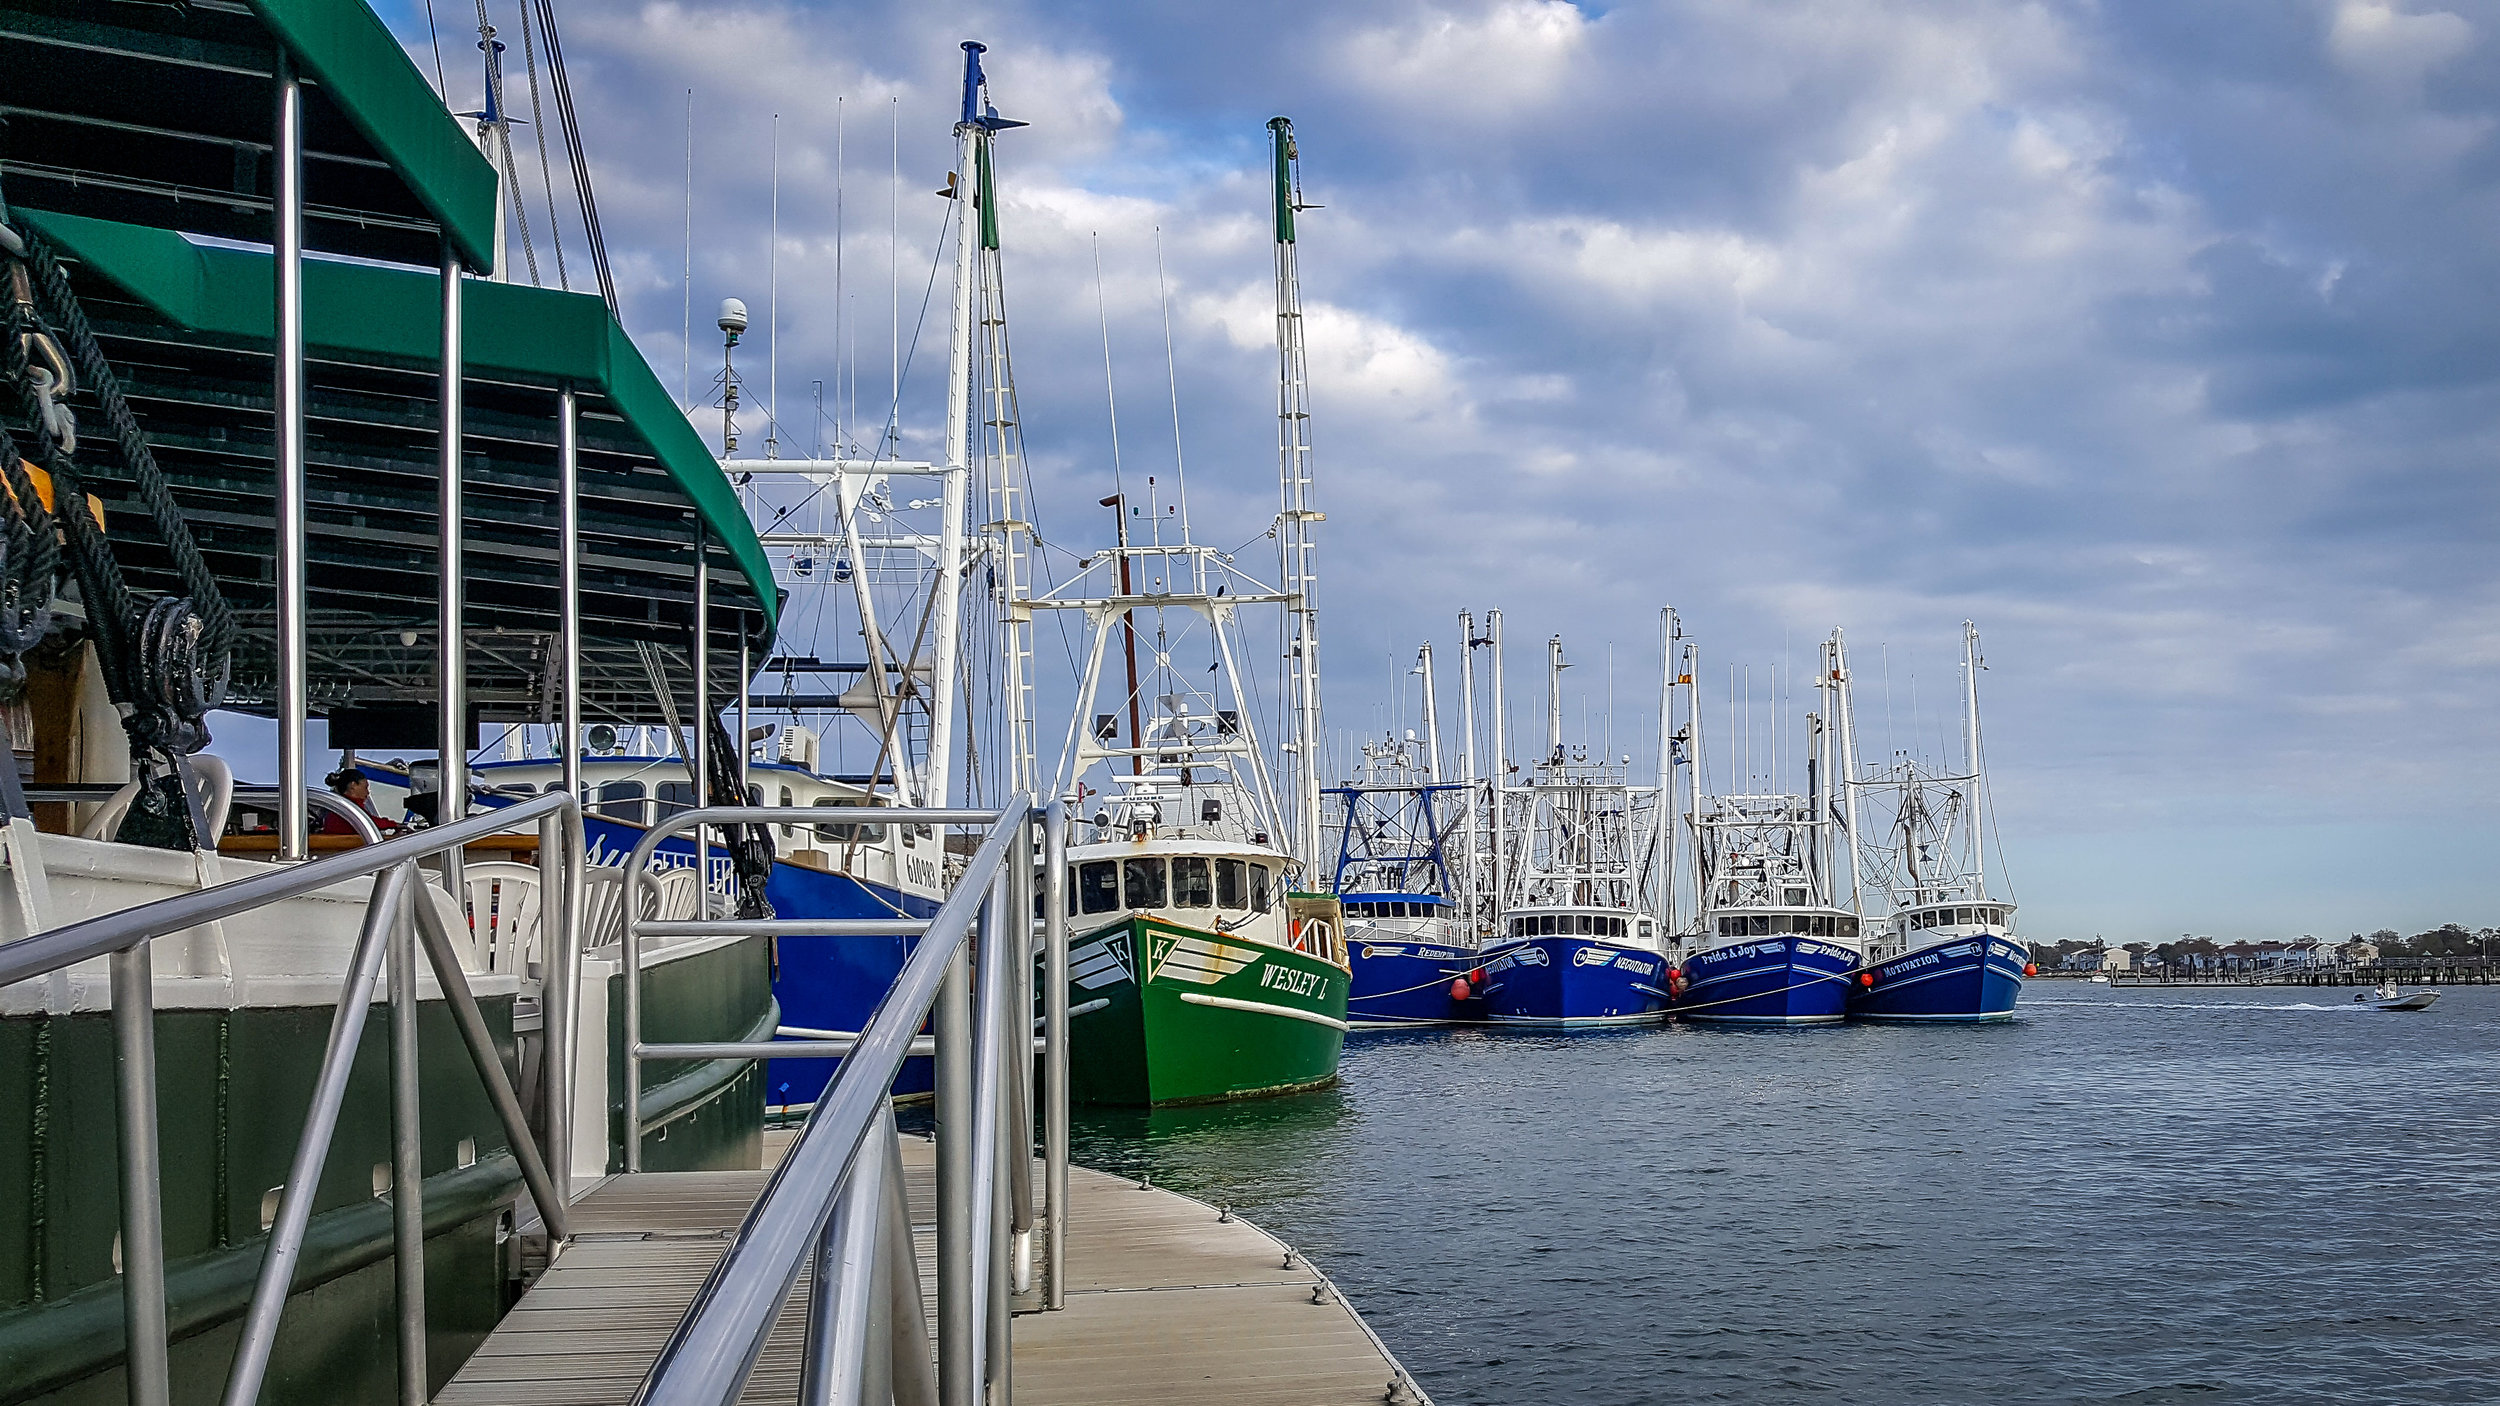 The Fishing Fleet in Cape May, NJ (Photo By Diane Edge)